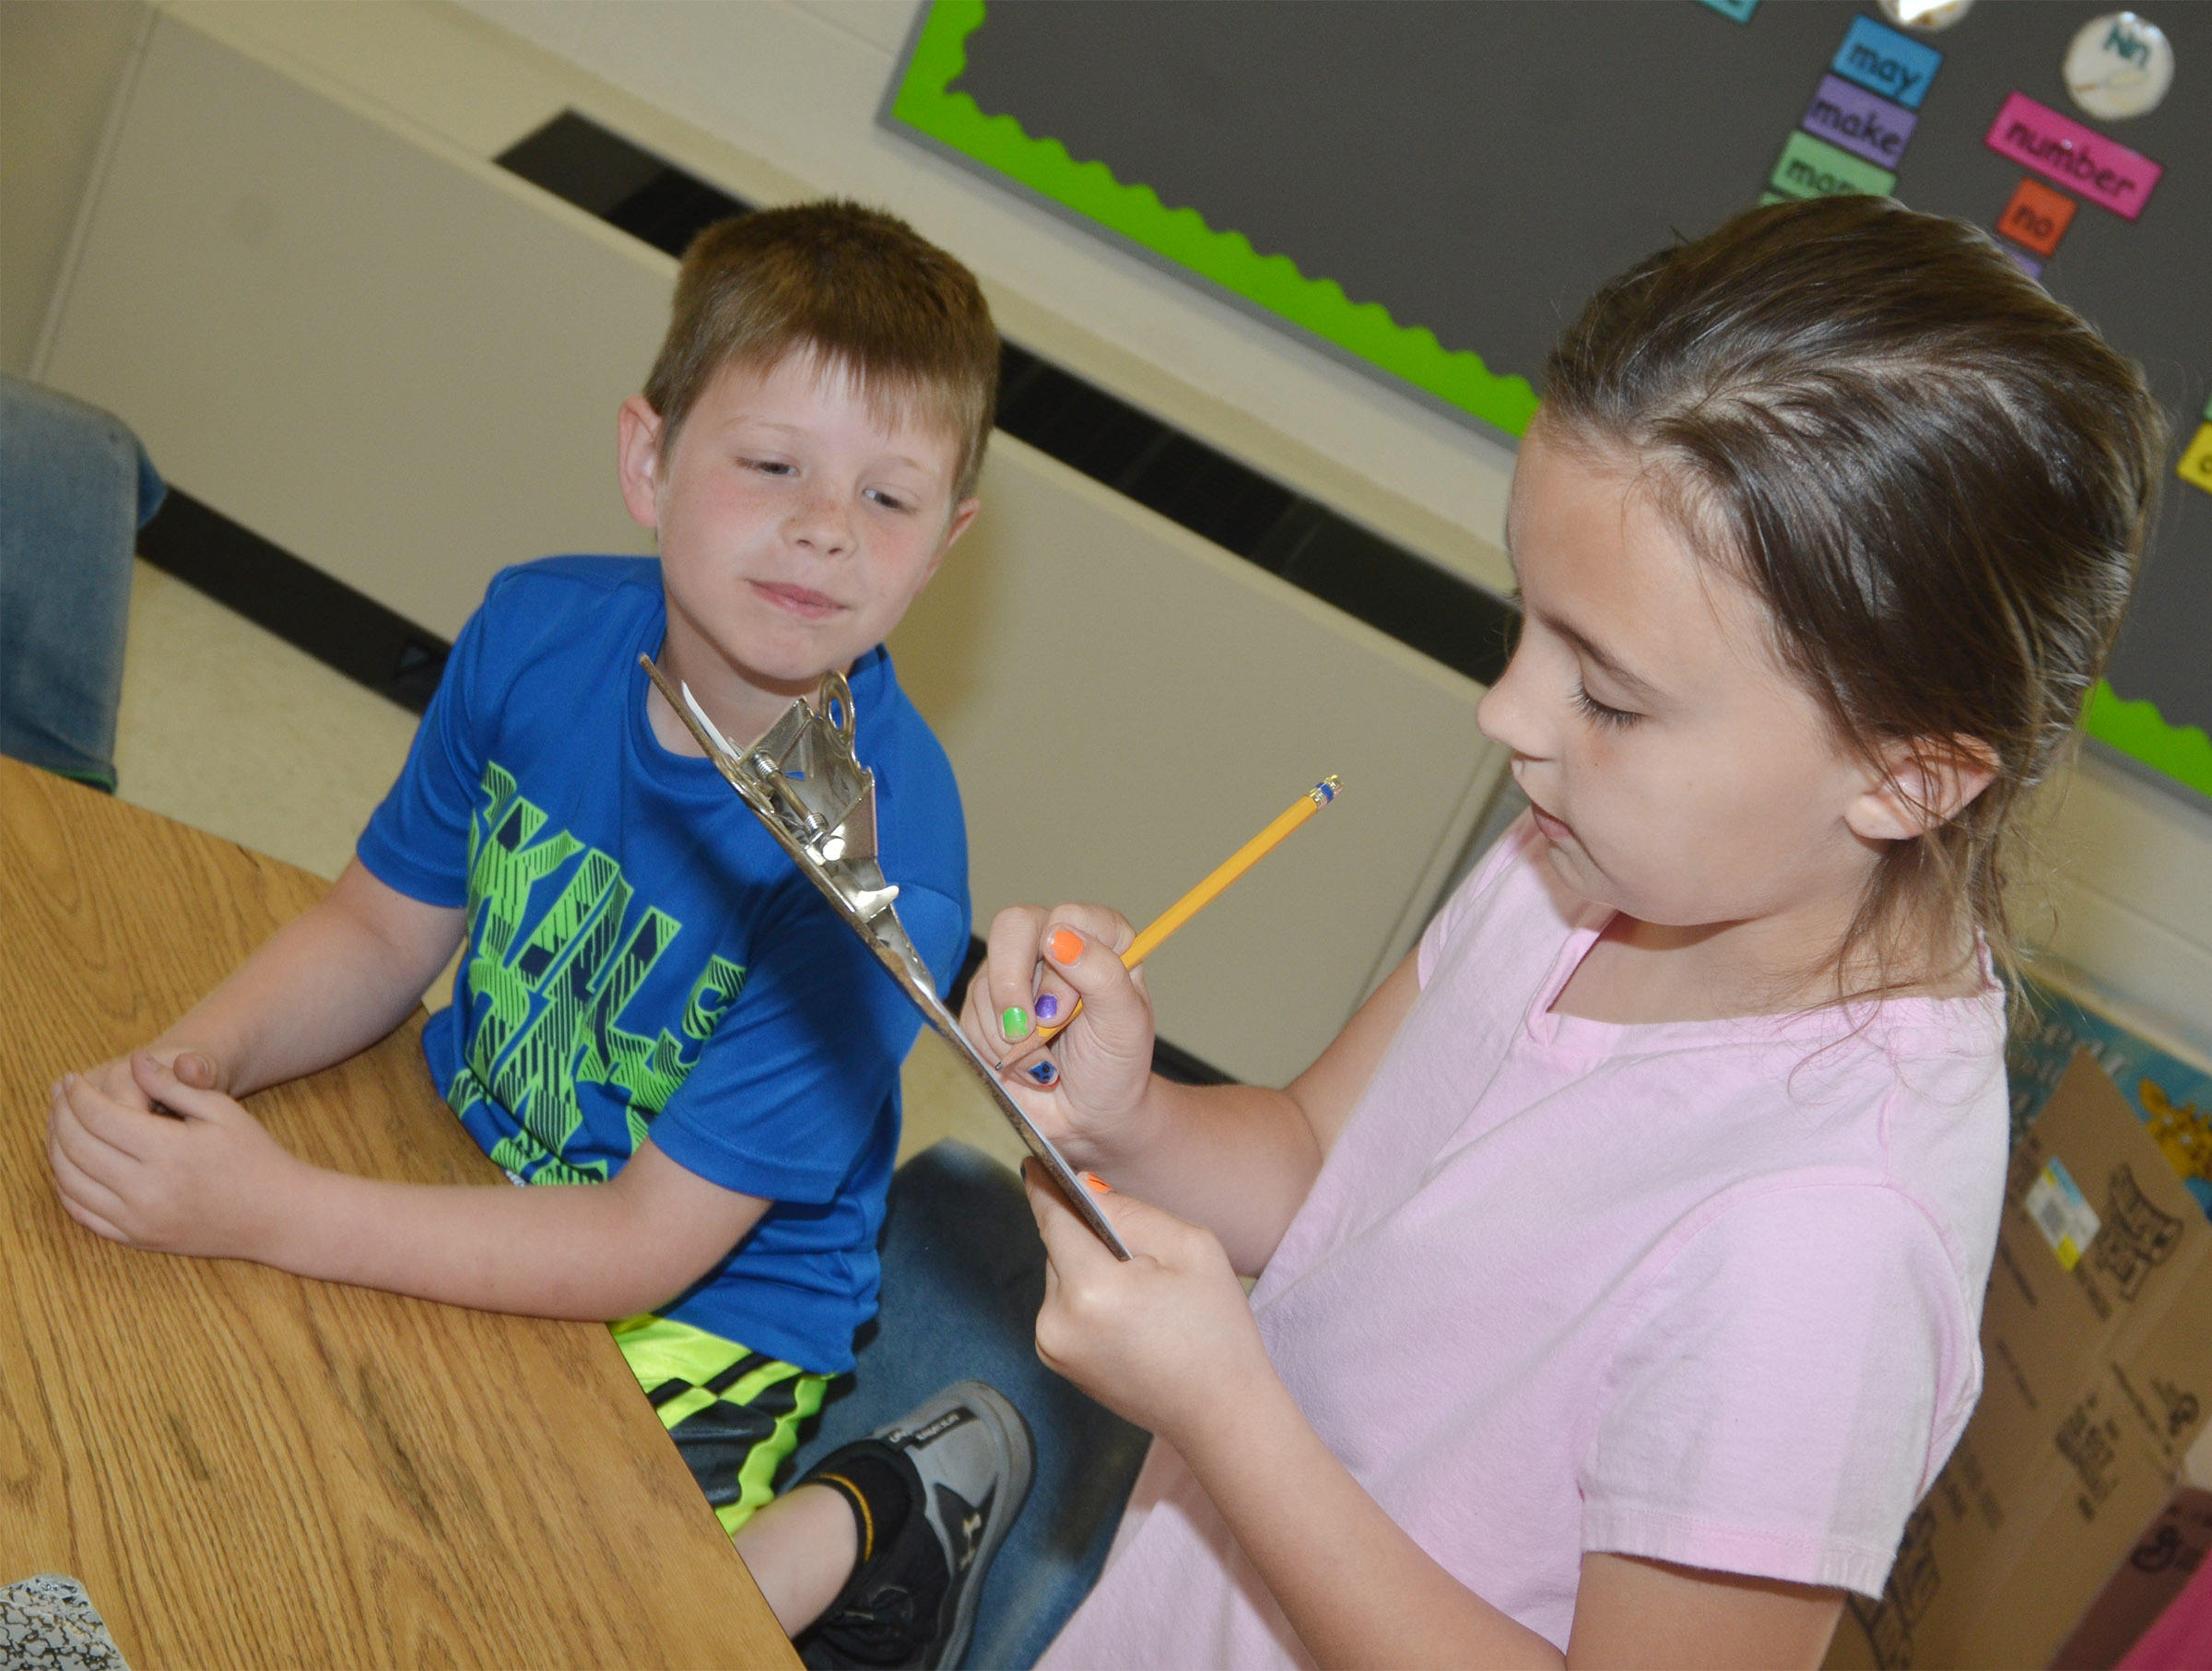 CES second-grader Annabelle Brockman interviews first-grader Brody Sidebottom.